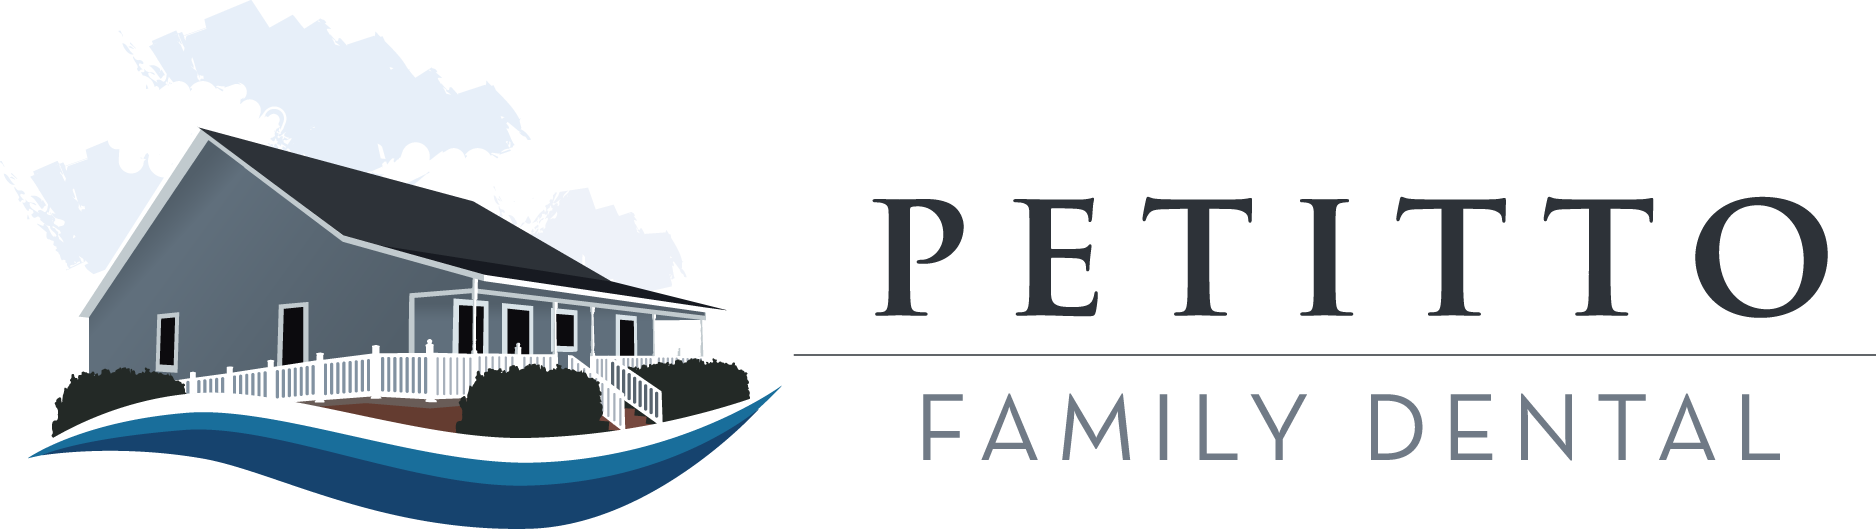 Petitto Family Dental